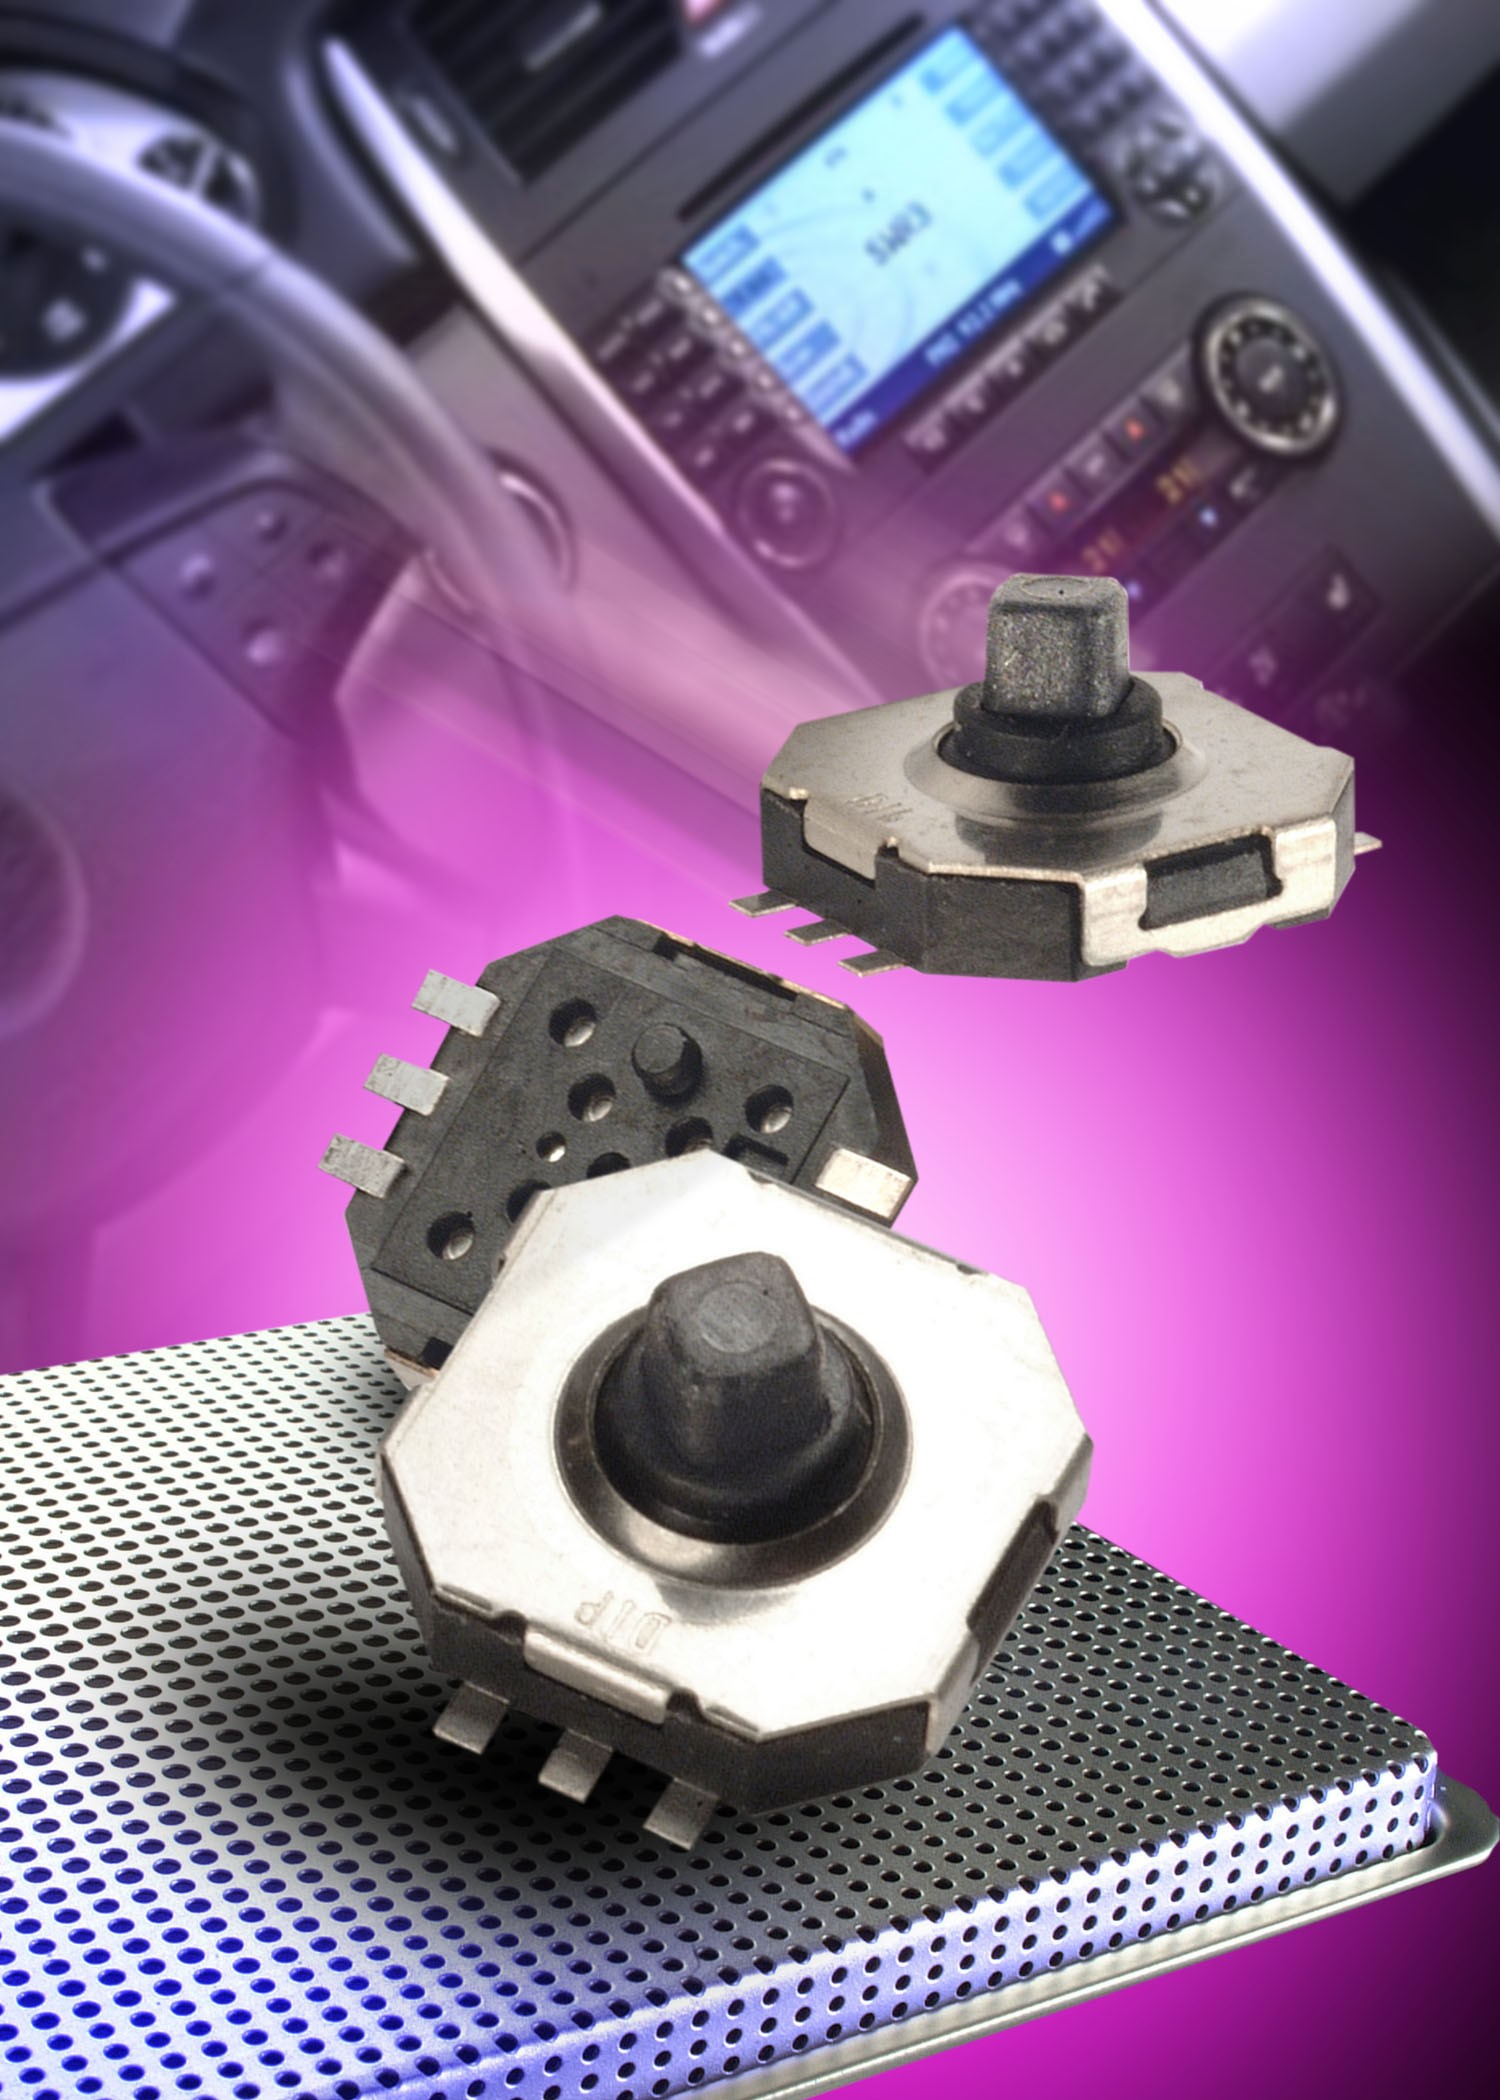 RoHS compliant mini-joystick has a total height of just 4.5mm